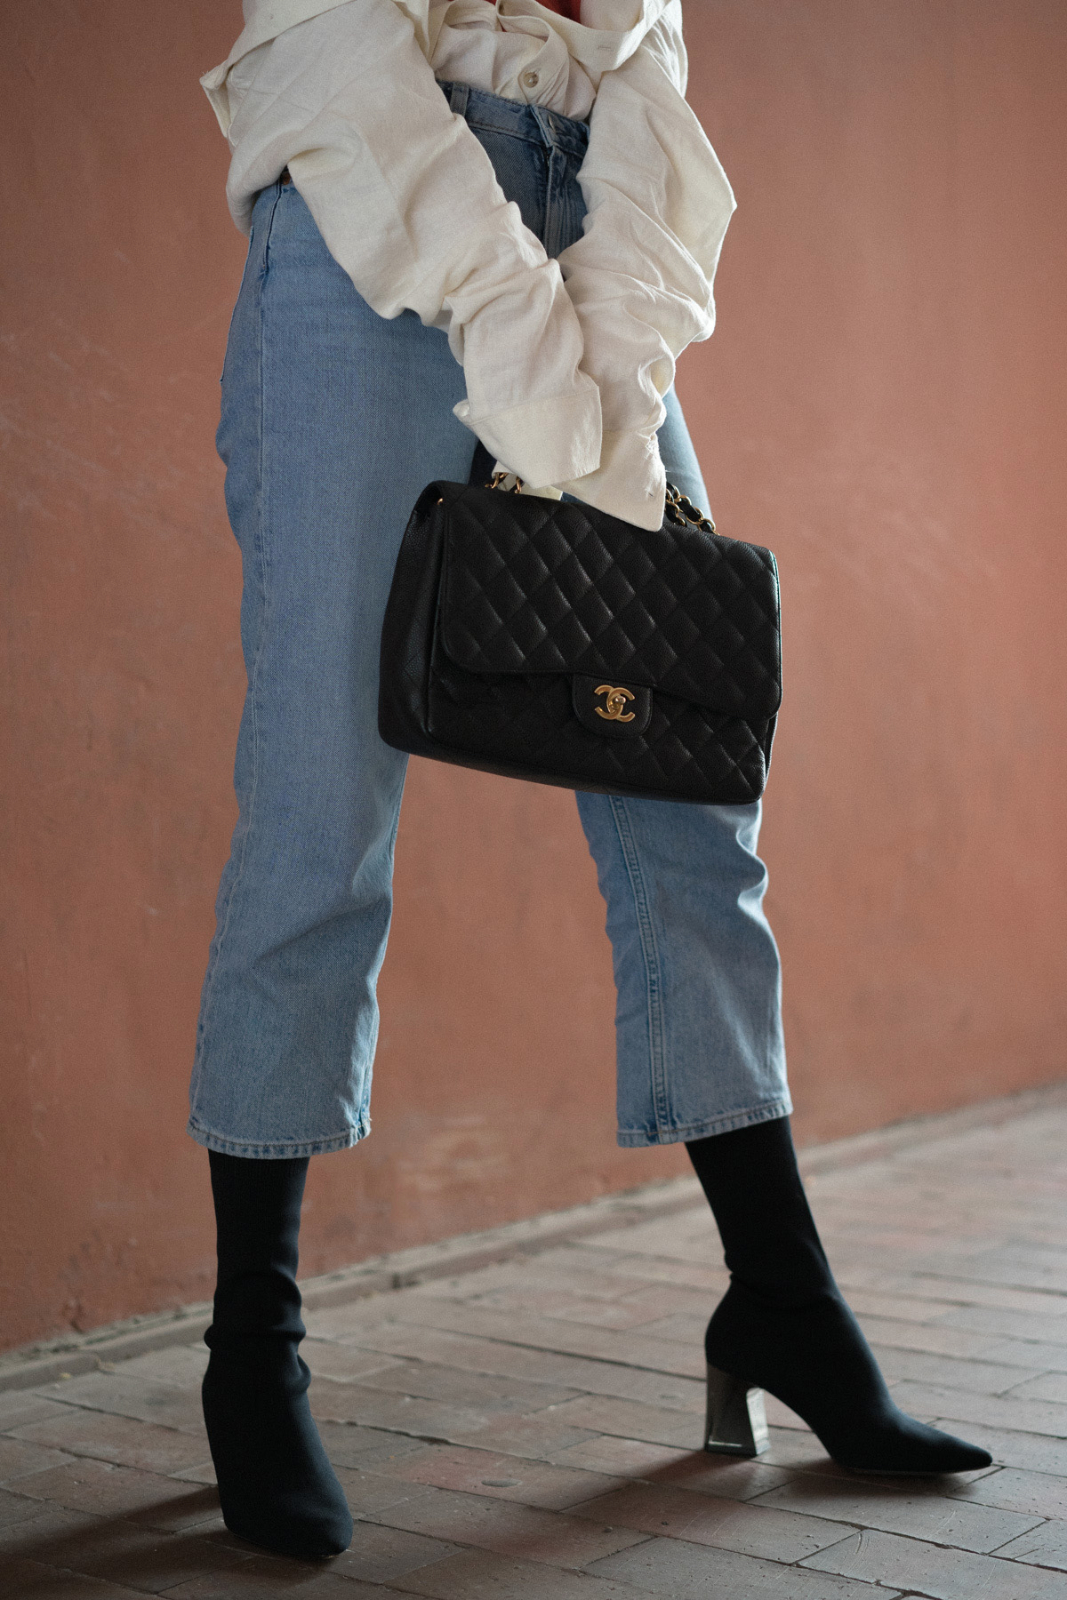 blogger_Berlin_Deutschland_Blogger_Fashionblogger_Berlin_Jeans_Chanel_2.55_4